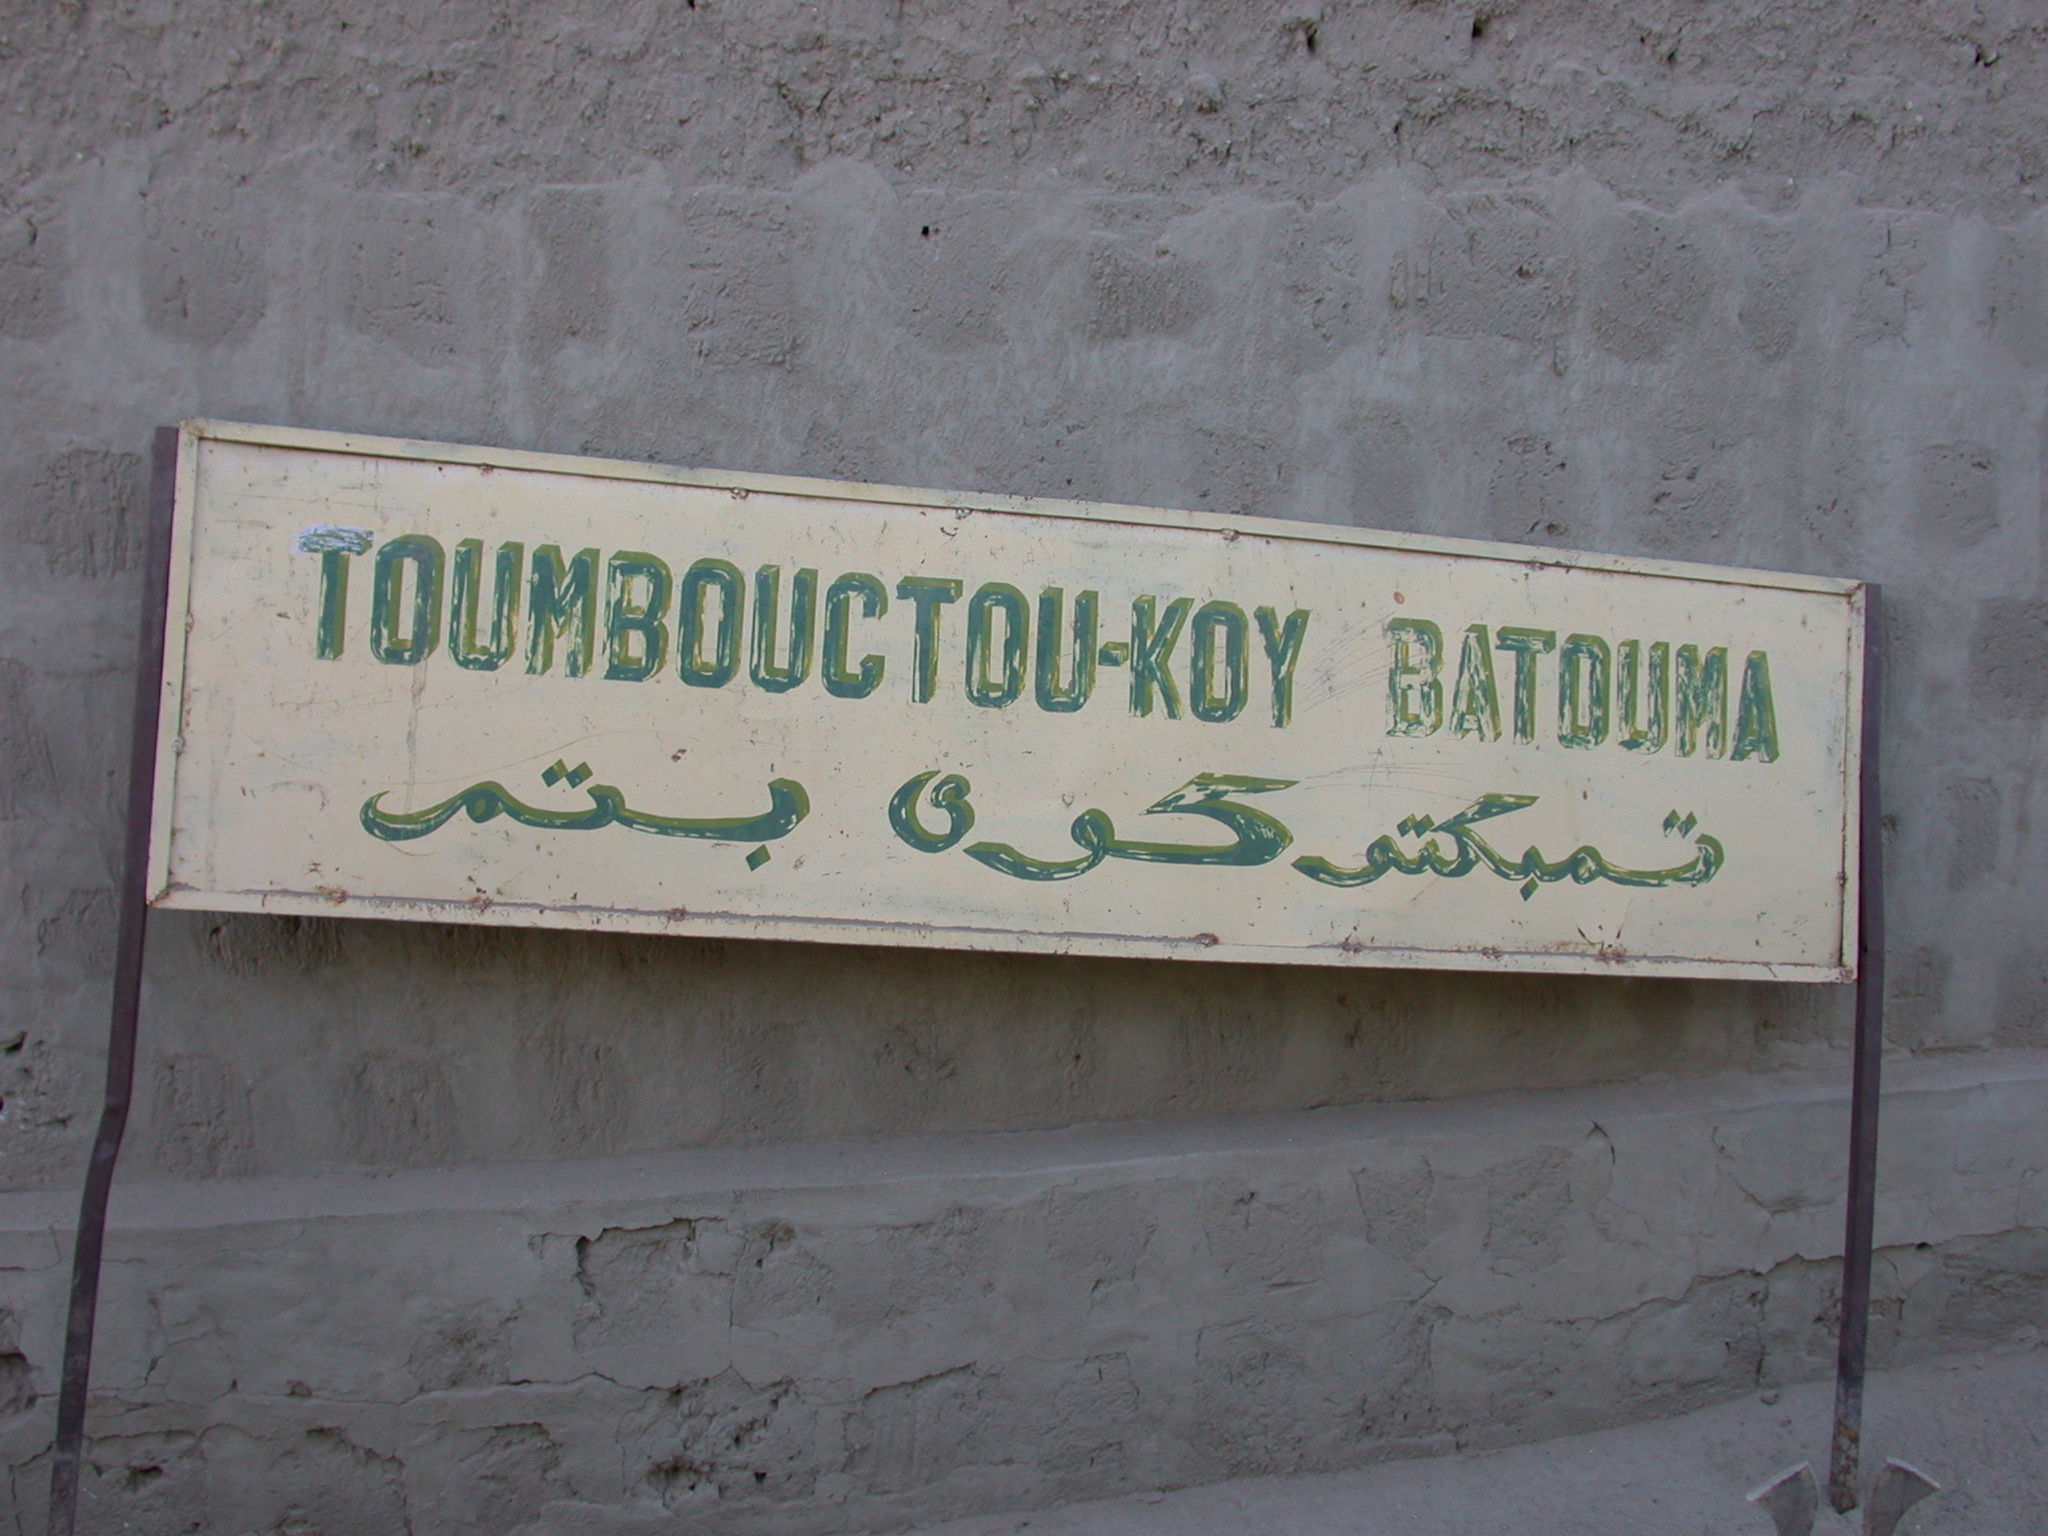 Toumboutou-Koy Batouma Sign at Reputed Site of Well of Boctou, Timbuktu, Mali